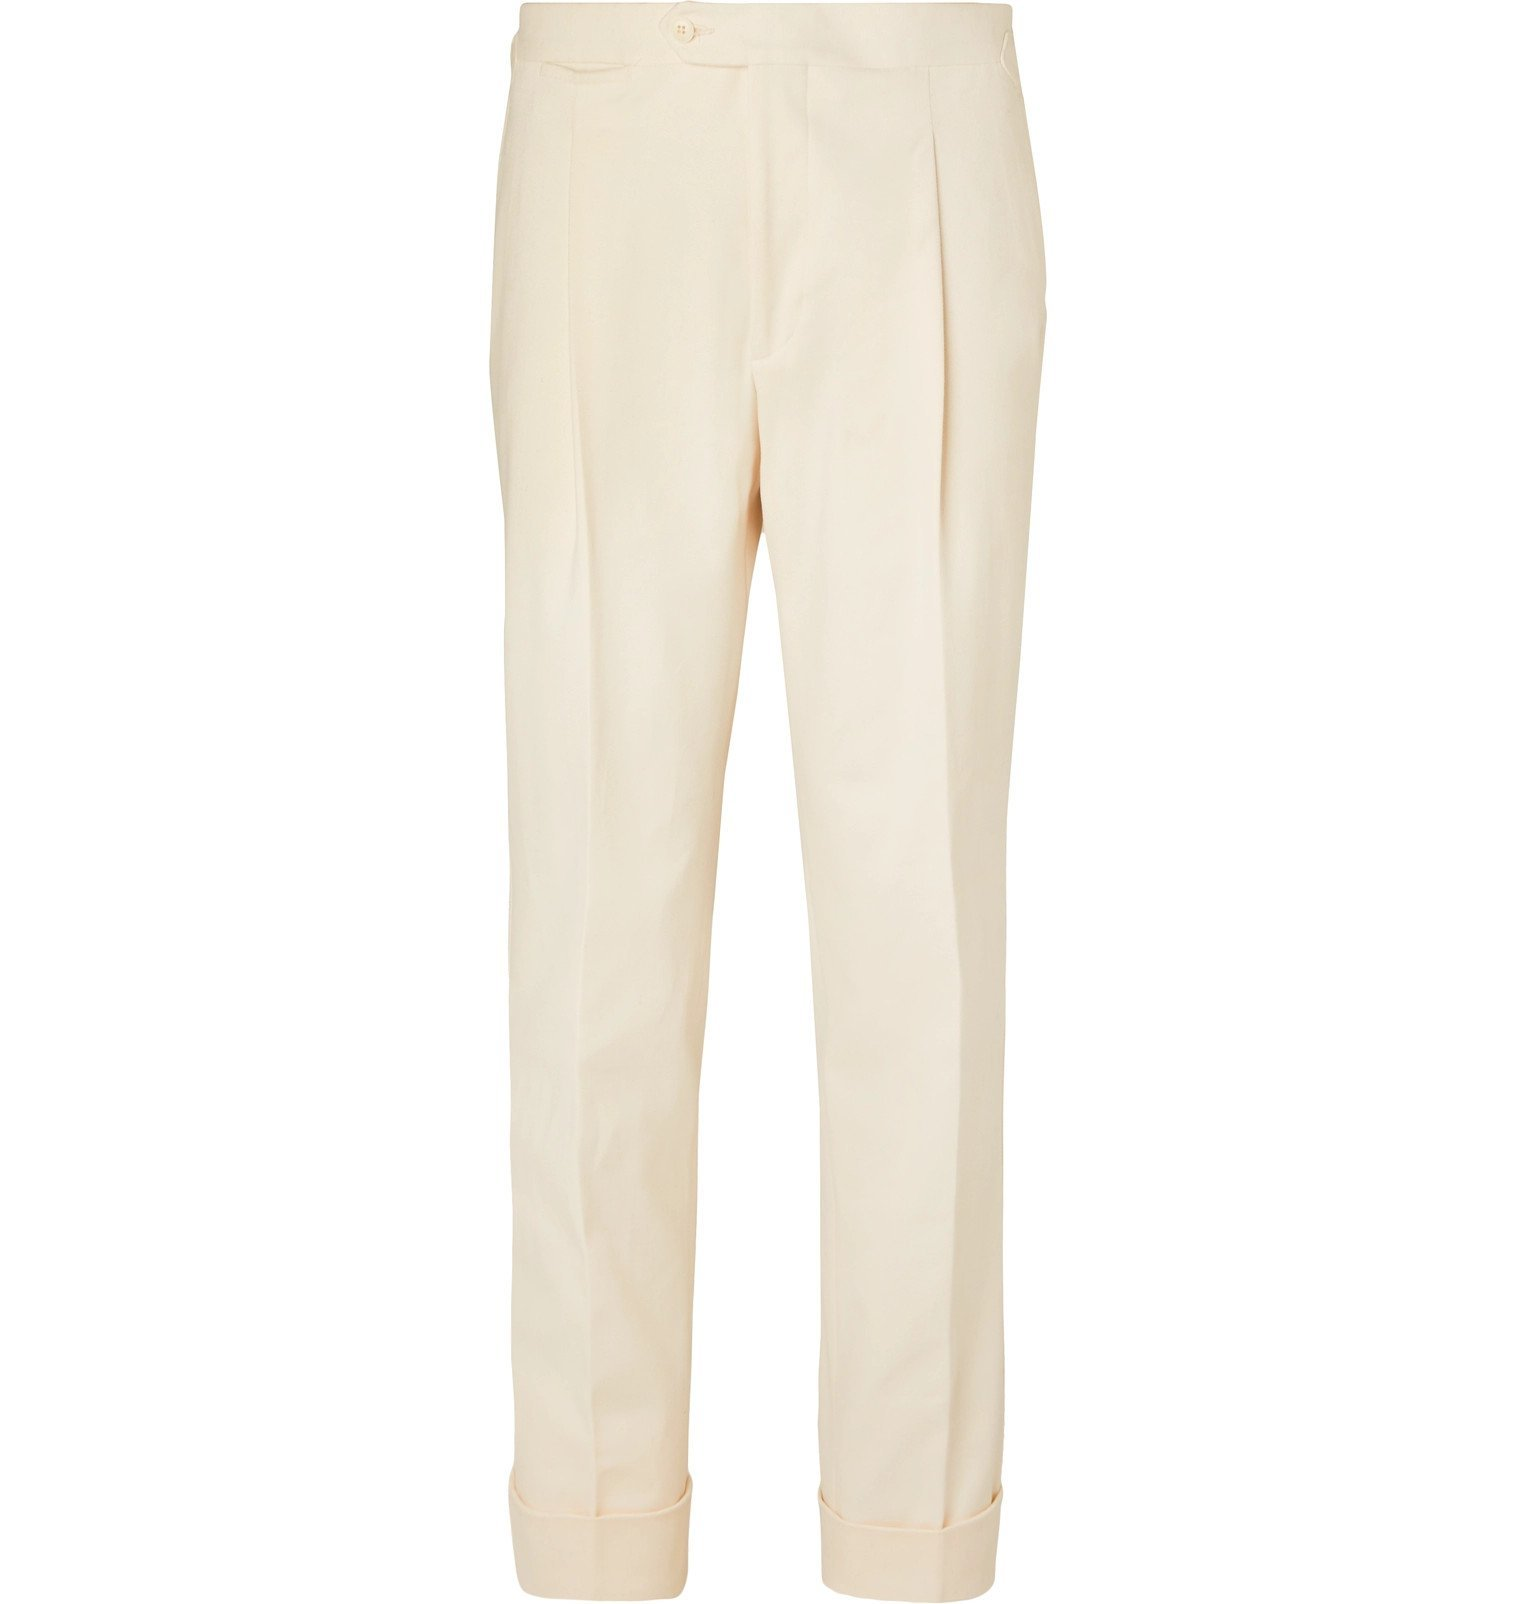 Saman Amel - Tapered Pleated Cotton-Blend Twill Trousers - Neutrals